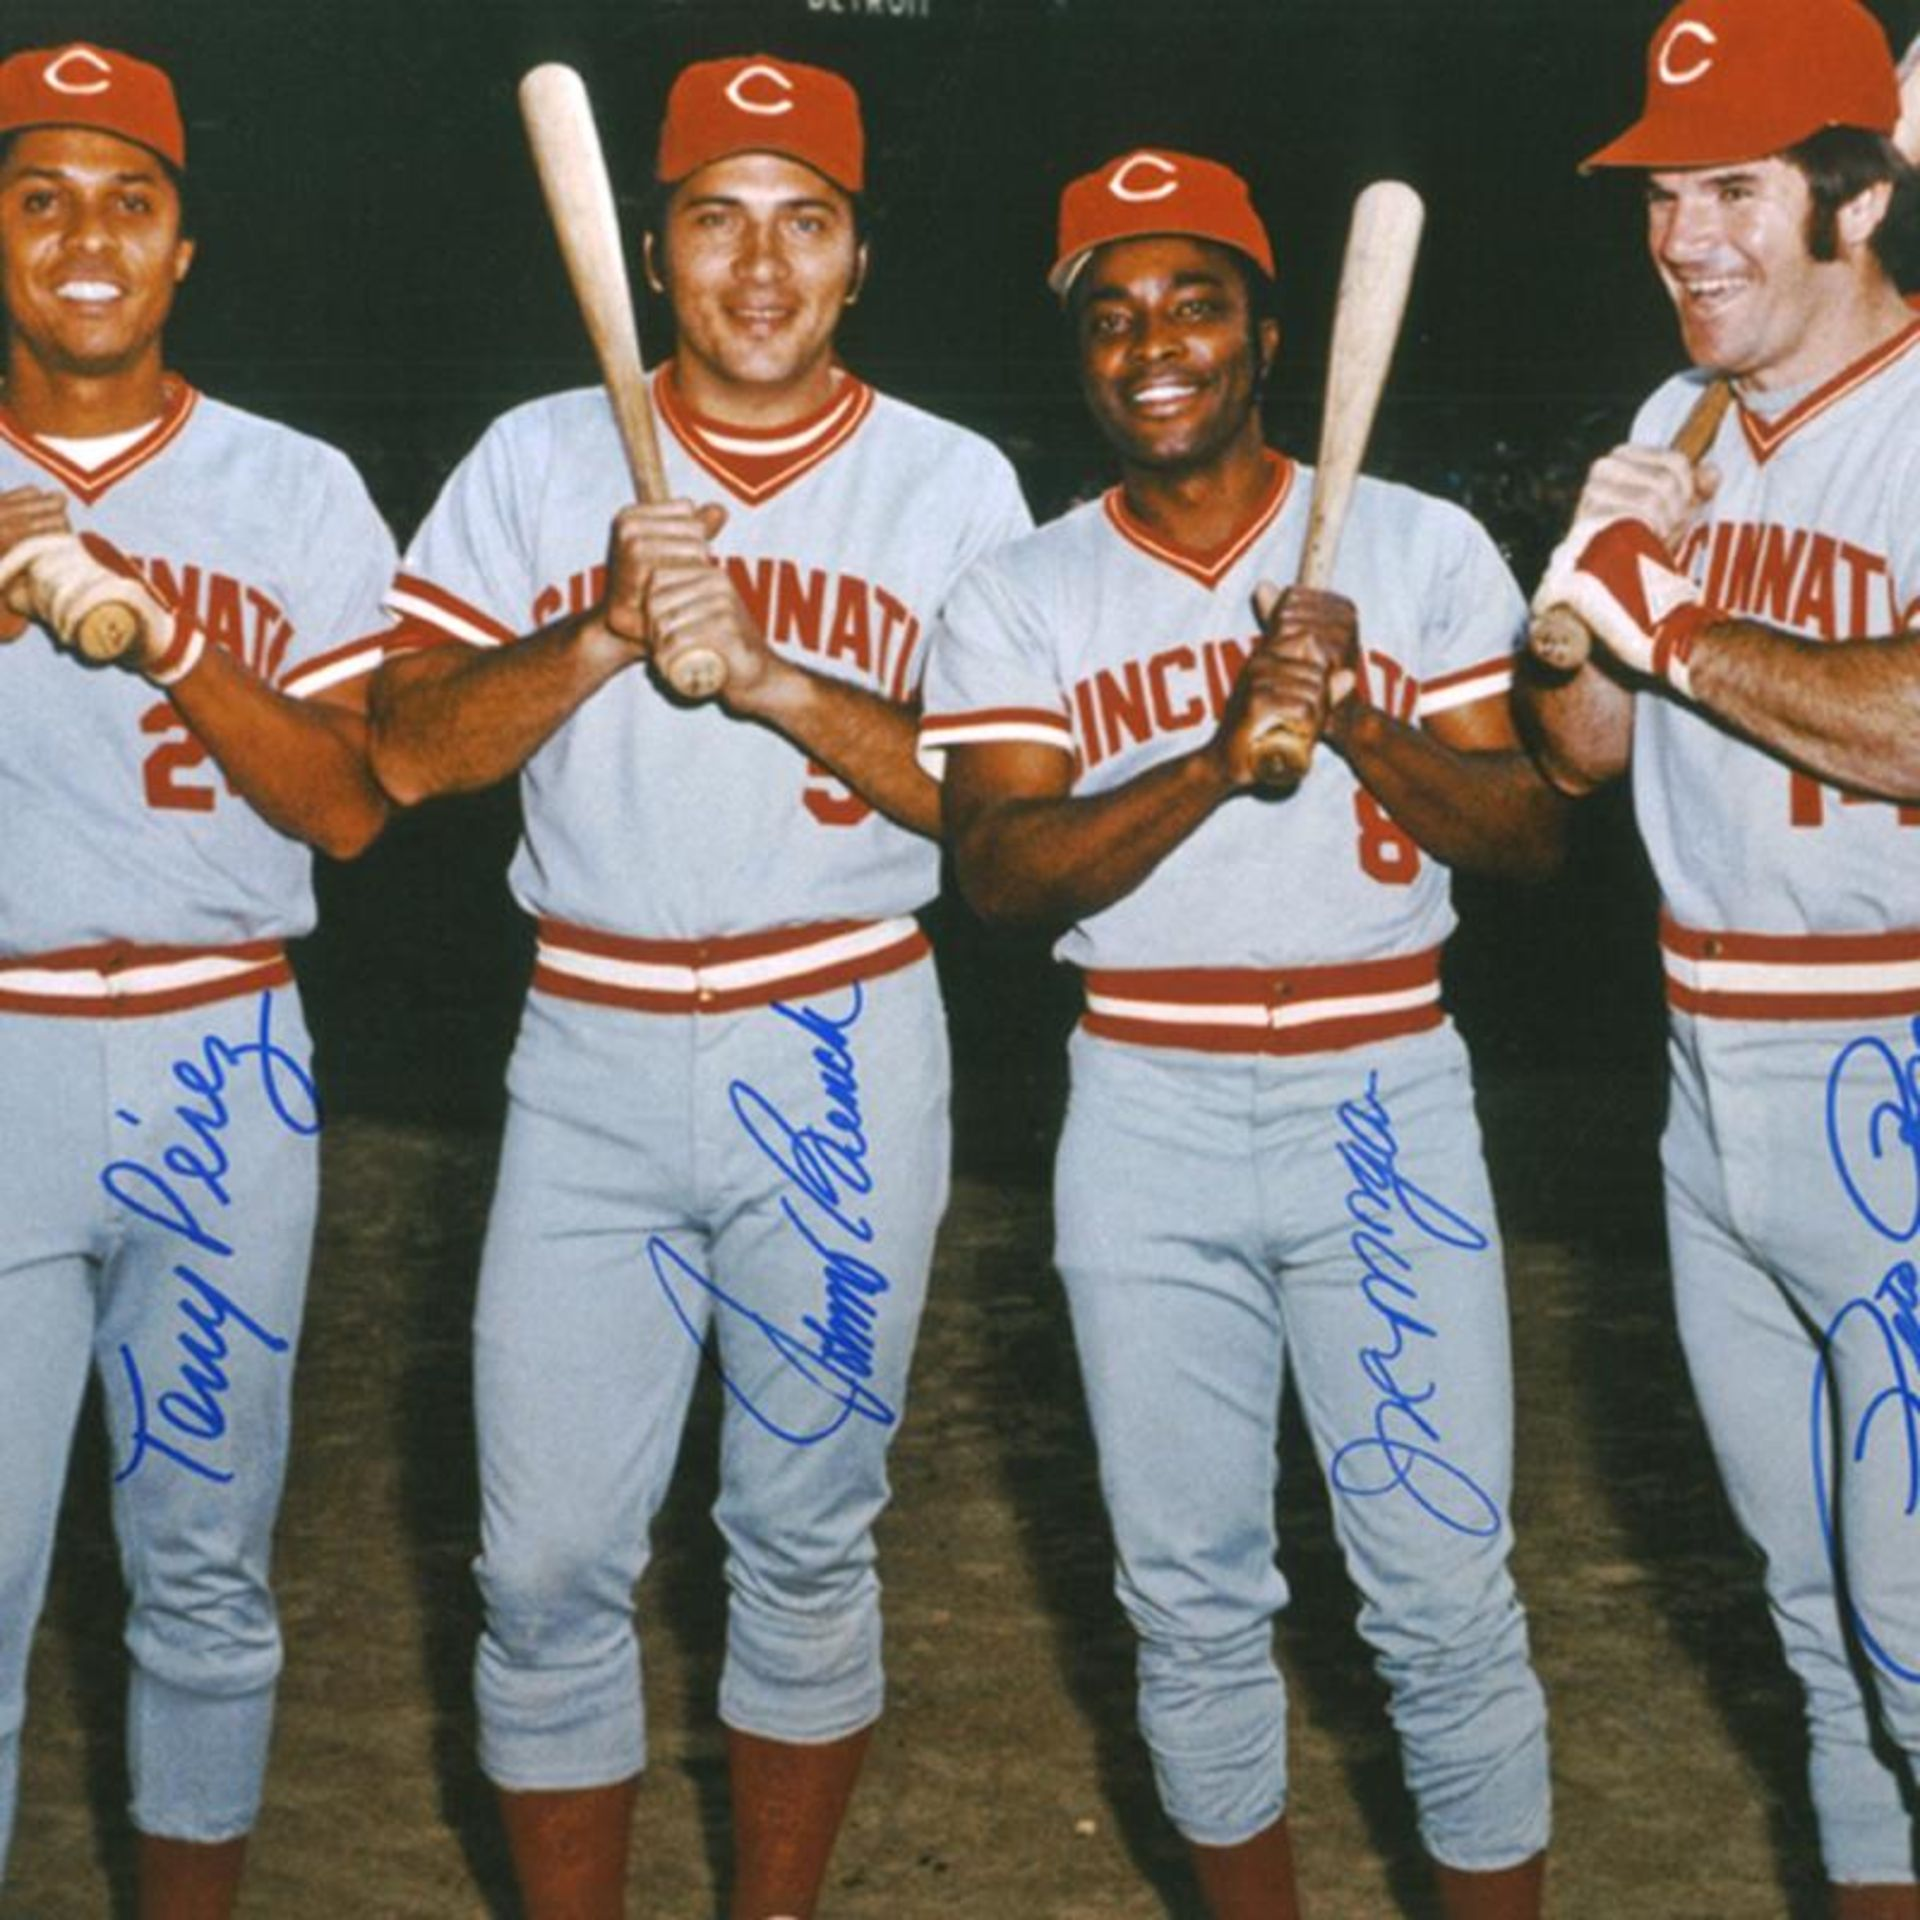 """""""The Big Four"""" Framed Photograph Autographed by the Big Red Machine's Johnny Ben - Image 2 of 2"""